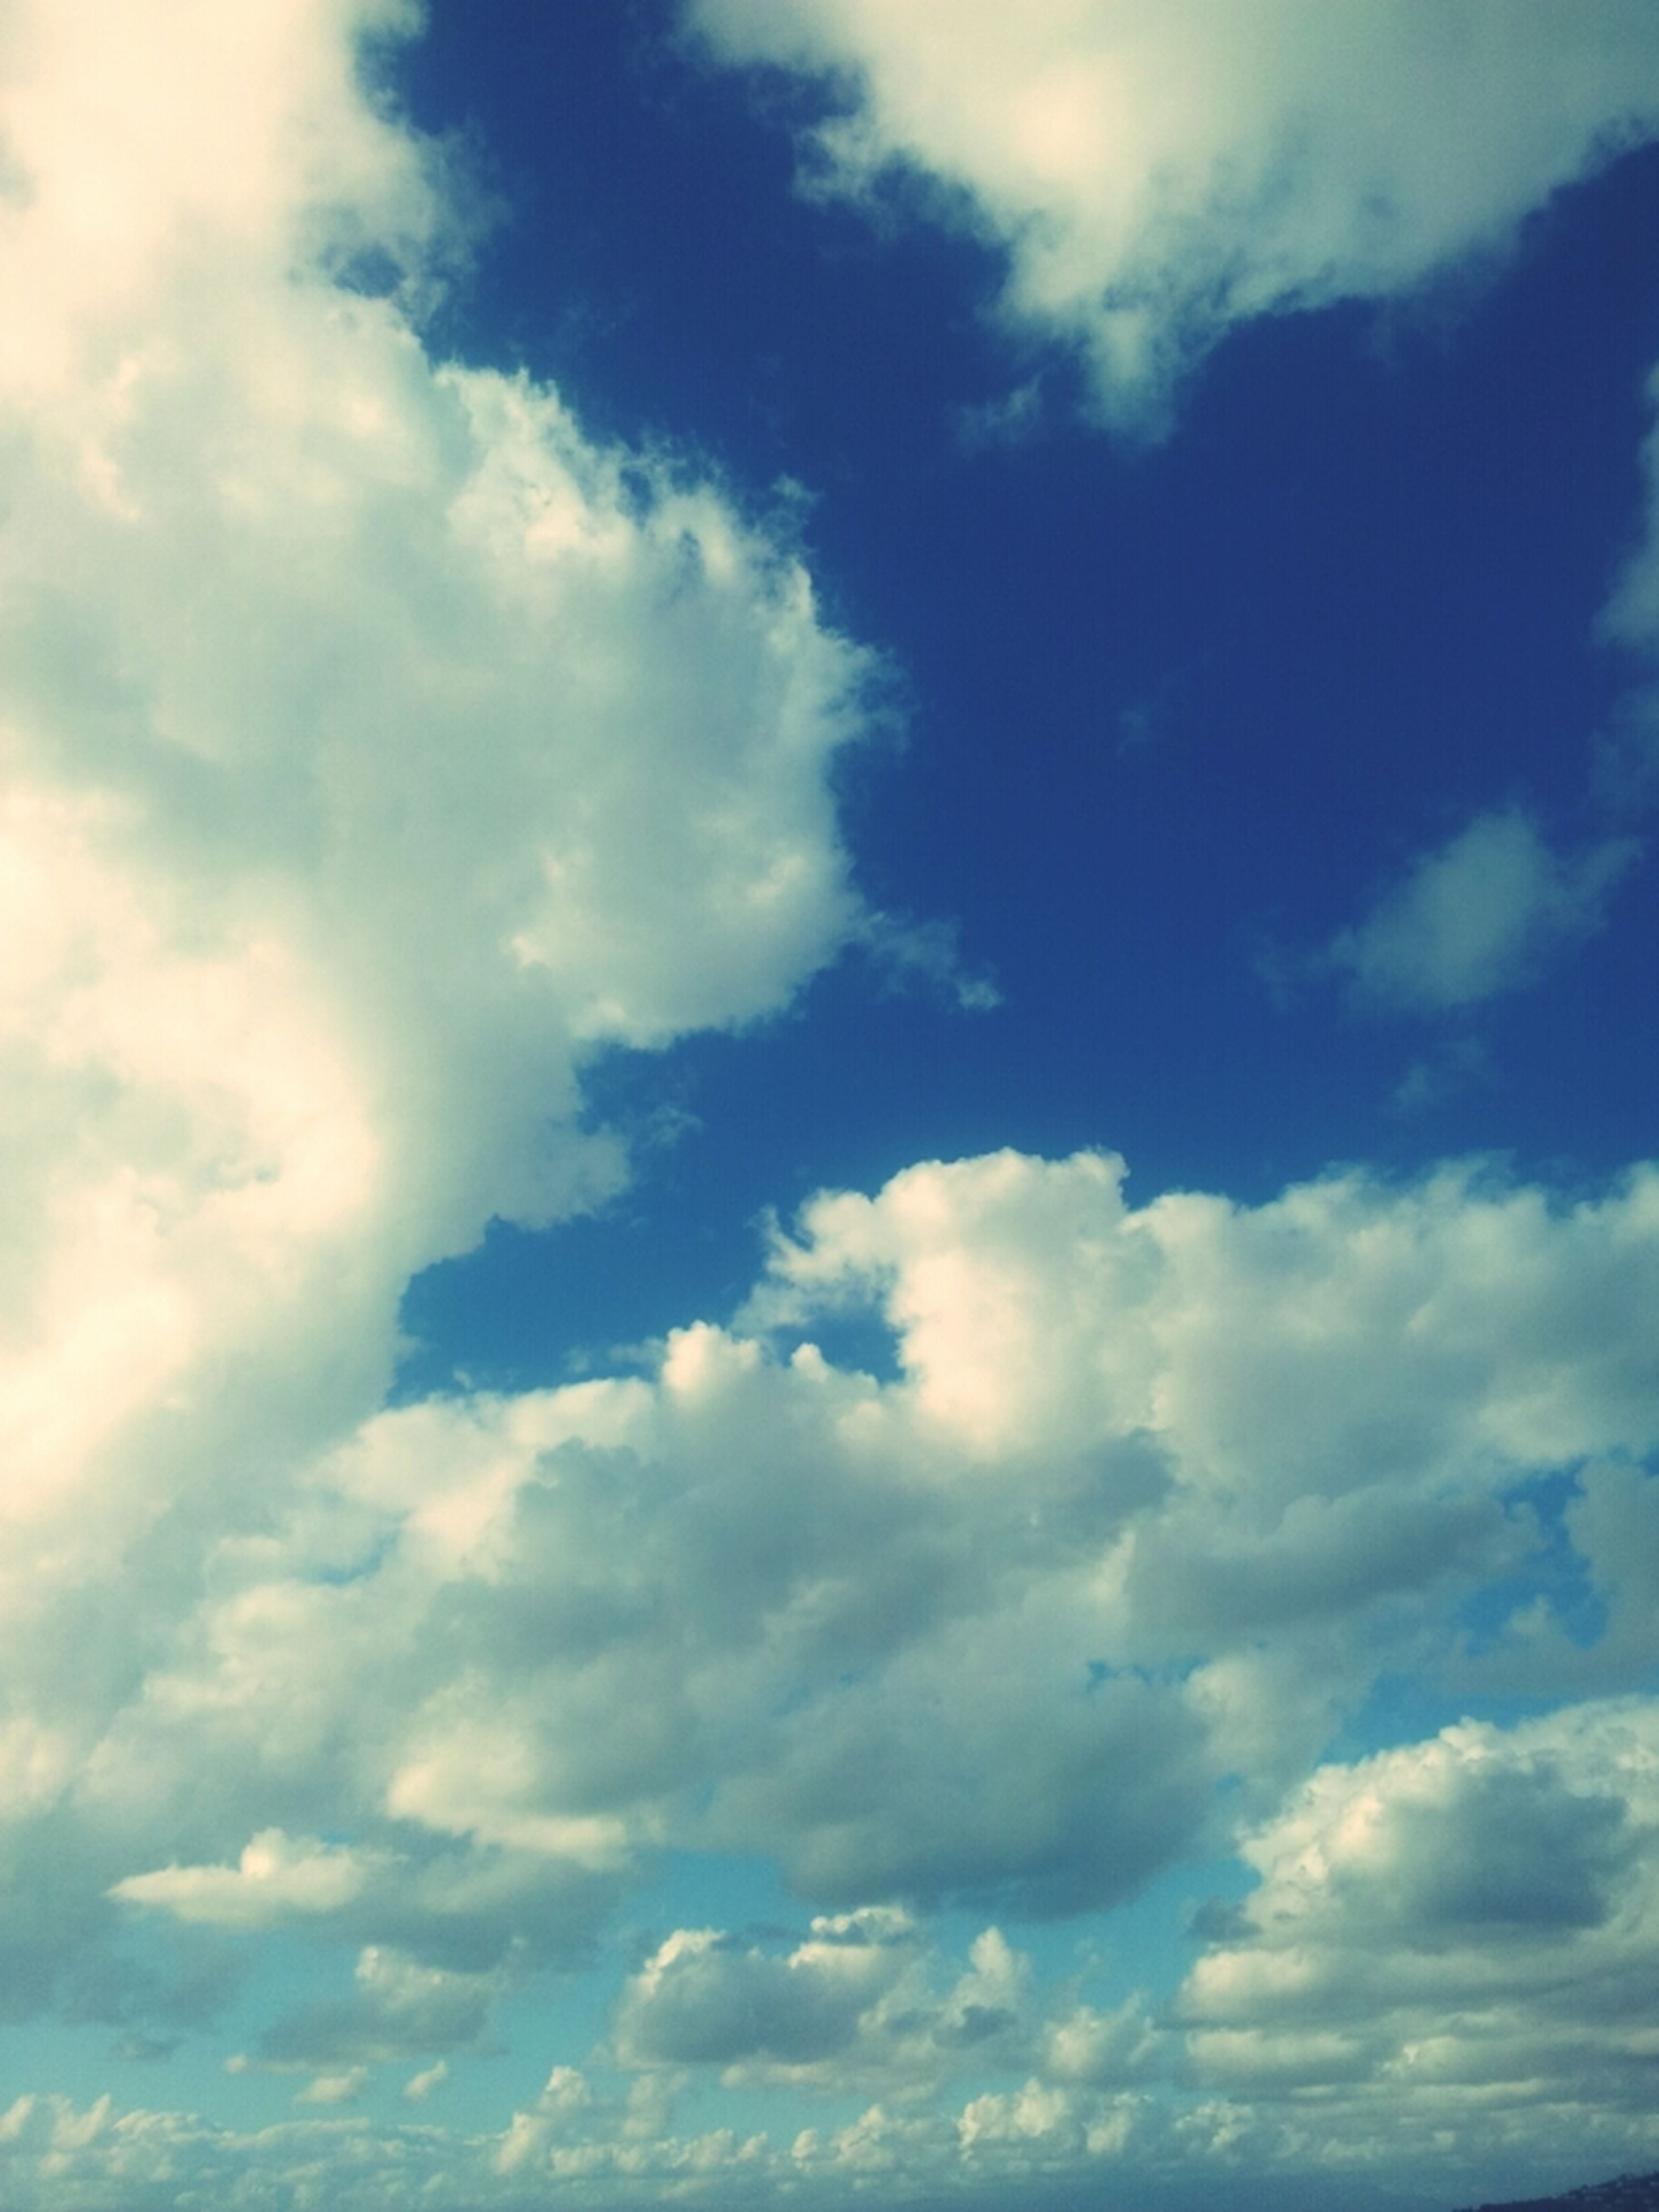 sky, cloud - sky, low angle view, tranquility, beauty in nature, scenics, sky only, tranquil scene, cloudy, nature, cloudscape, cloud, blue, backgrounds, idyllic, full frame, white color, outdoors, day, no people